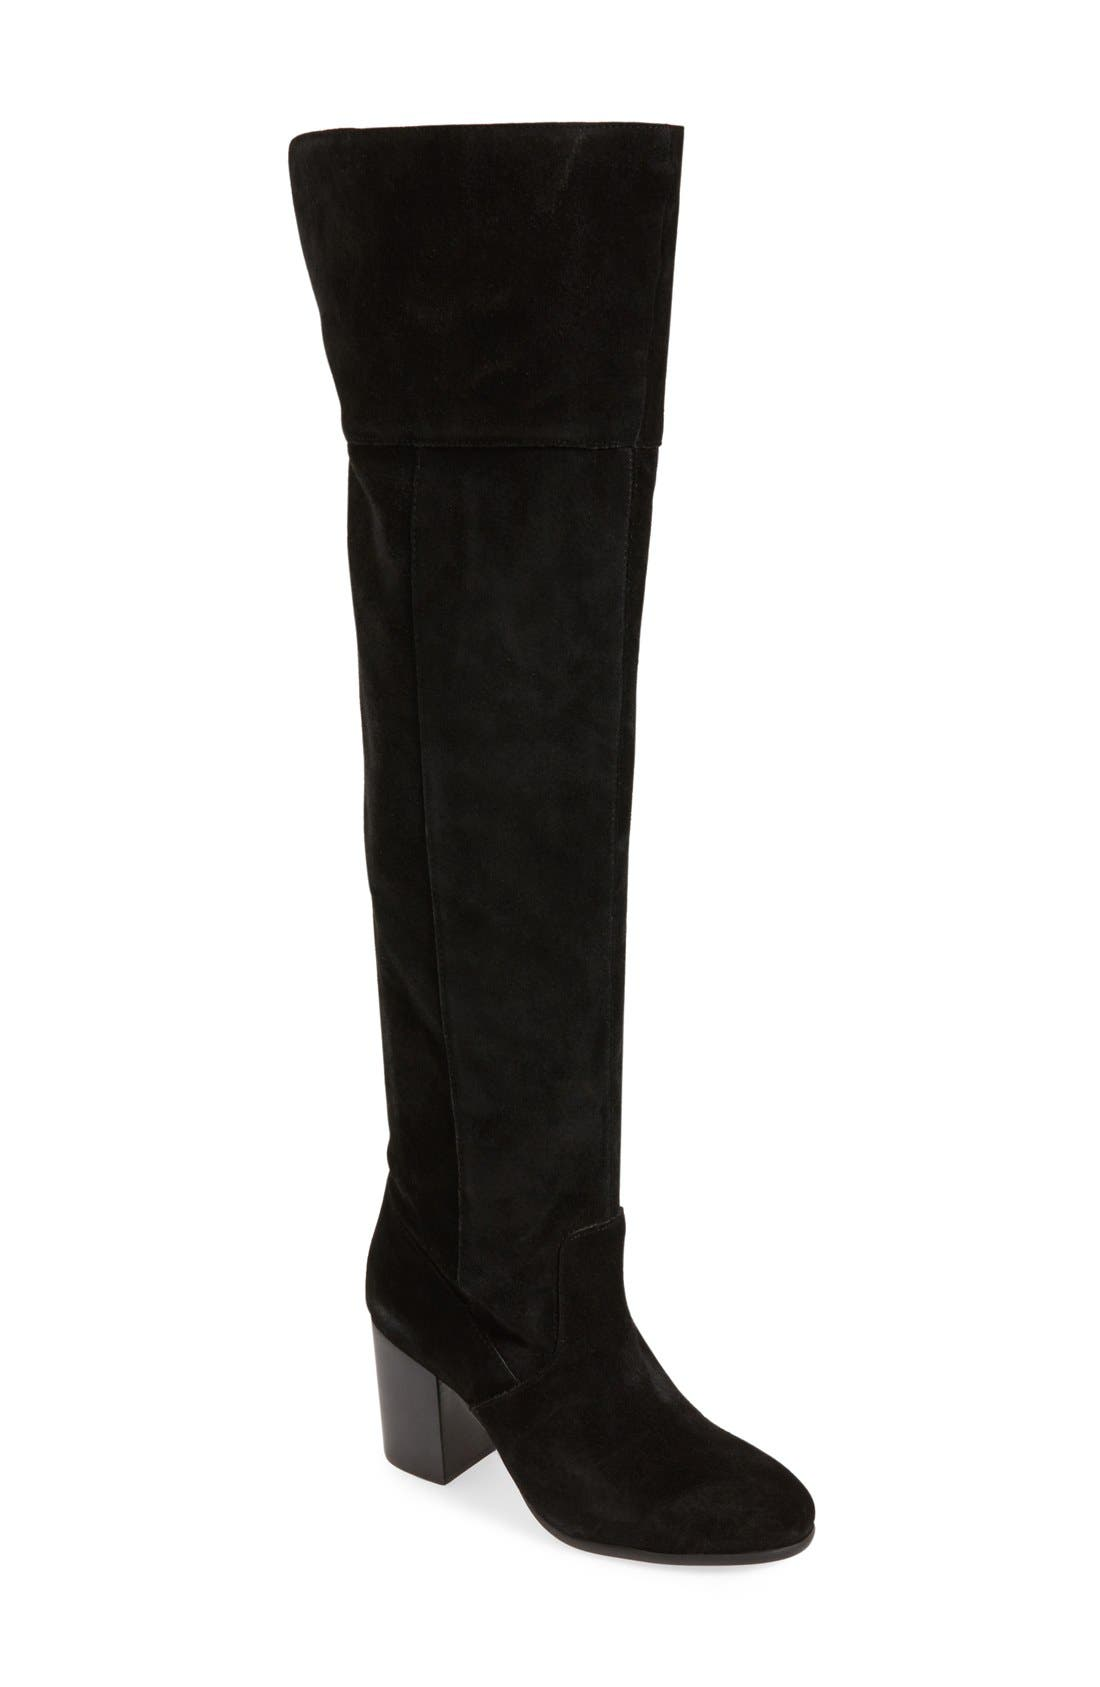 JessicaSimpson'Ebyy' Over the KneeBoot, Main, color, 001